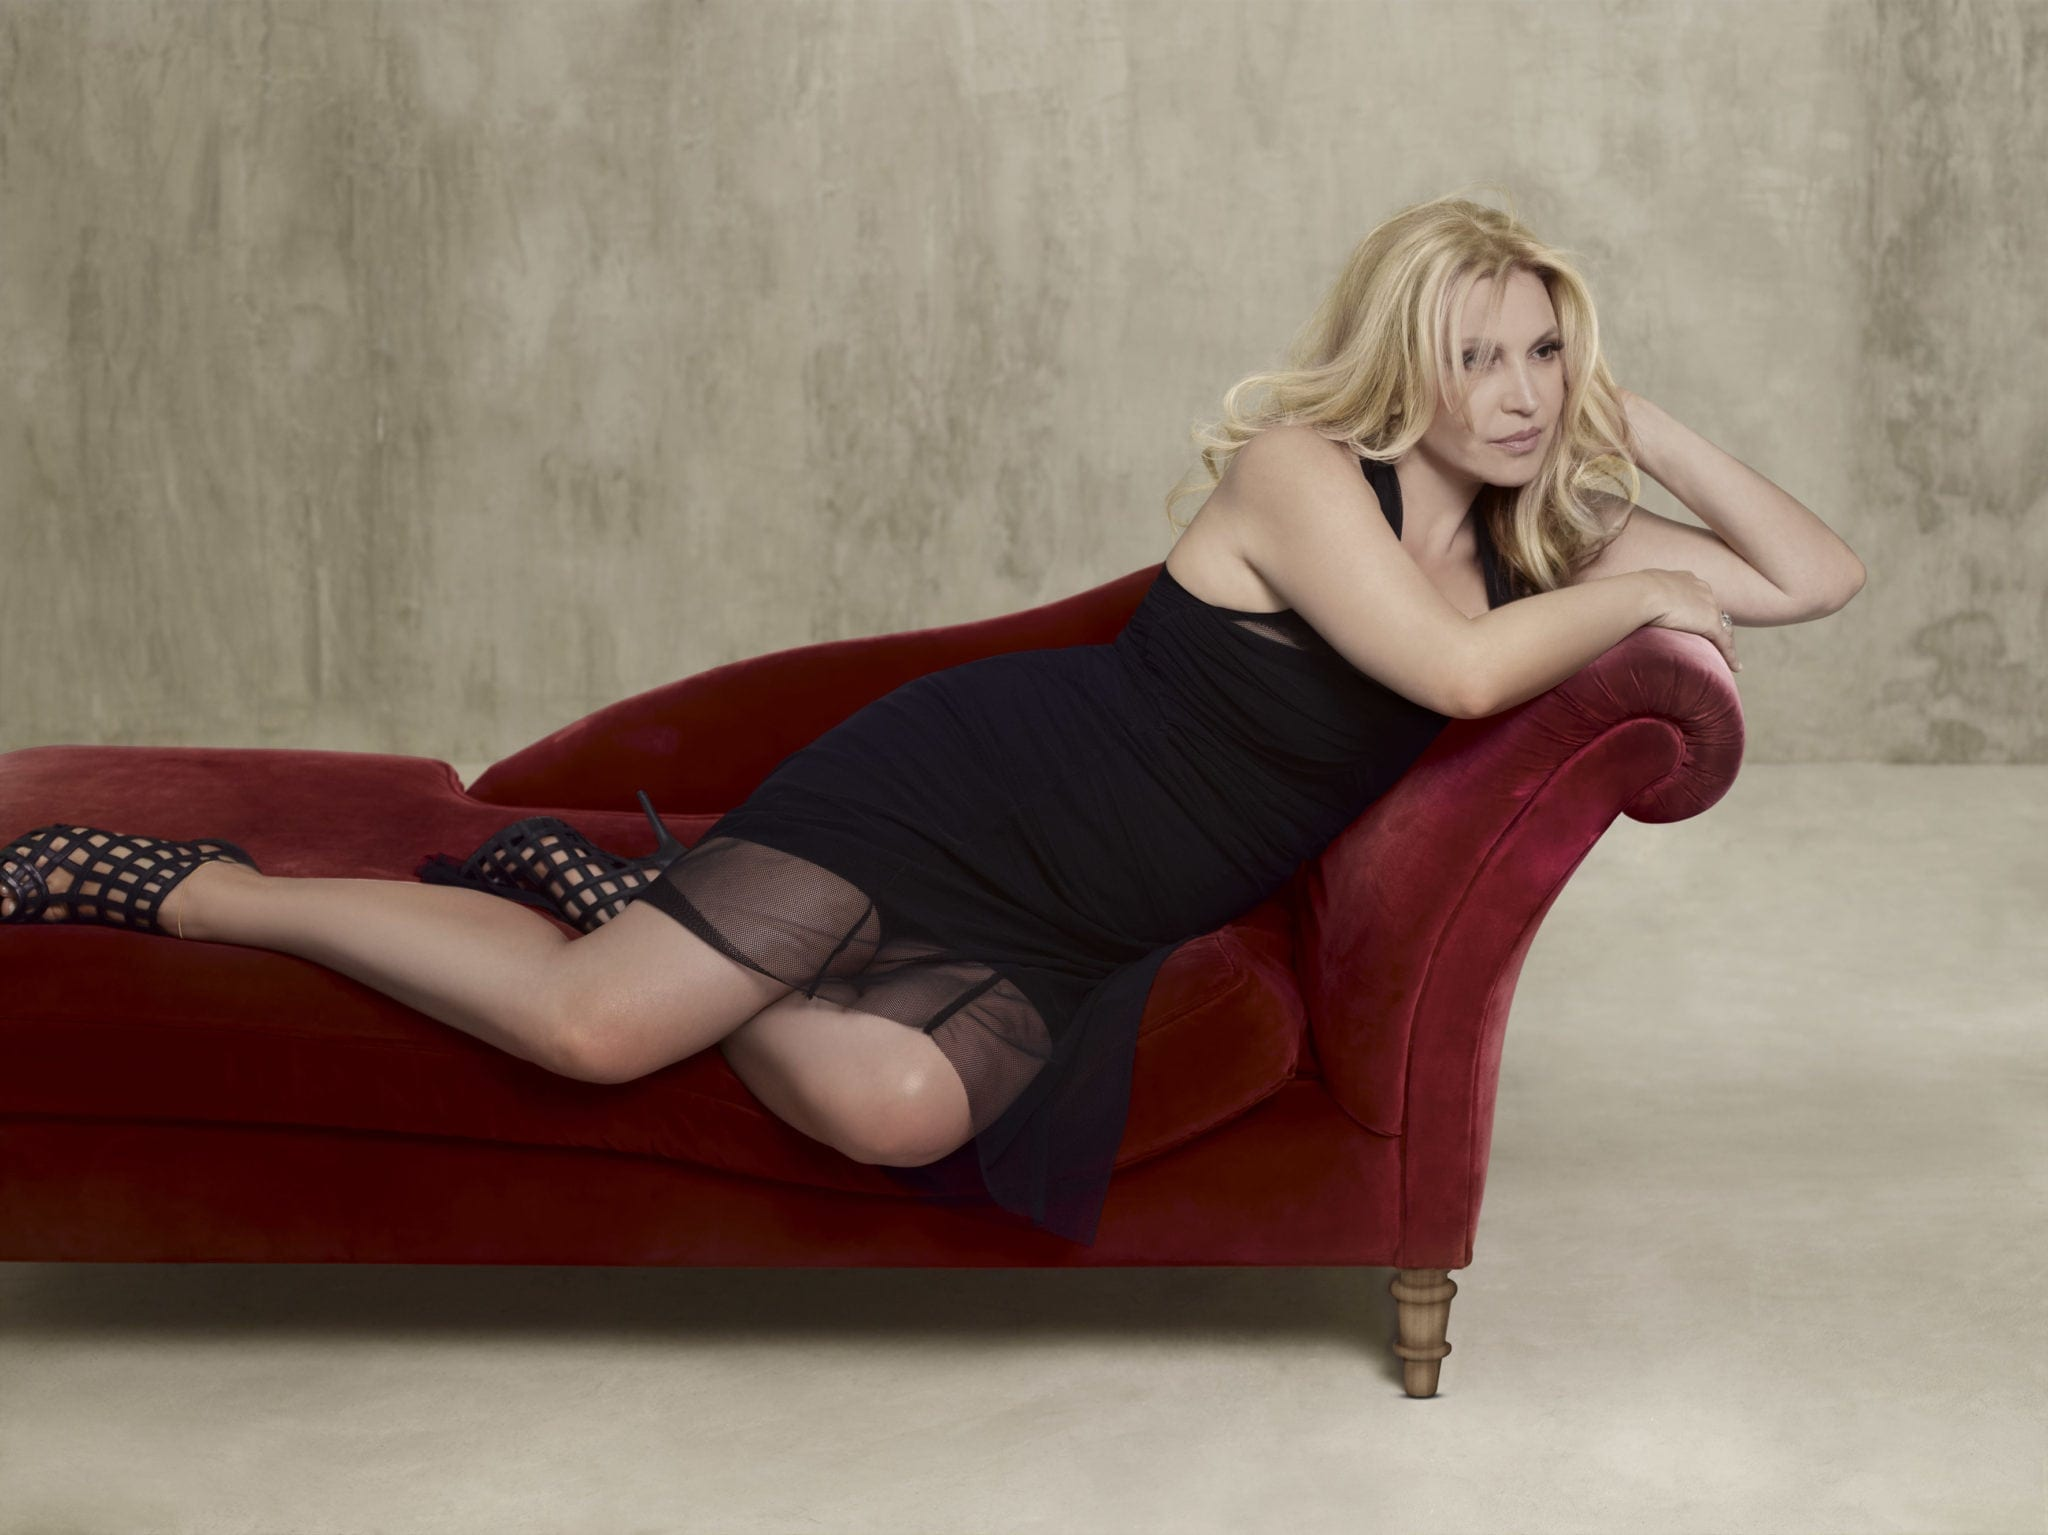 Brazil's Eliane Elias will be one of the headliners at this year's Atlanta Jazz Festival.